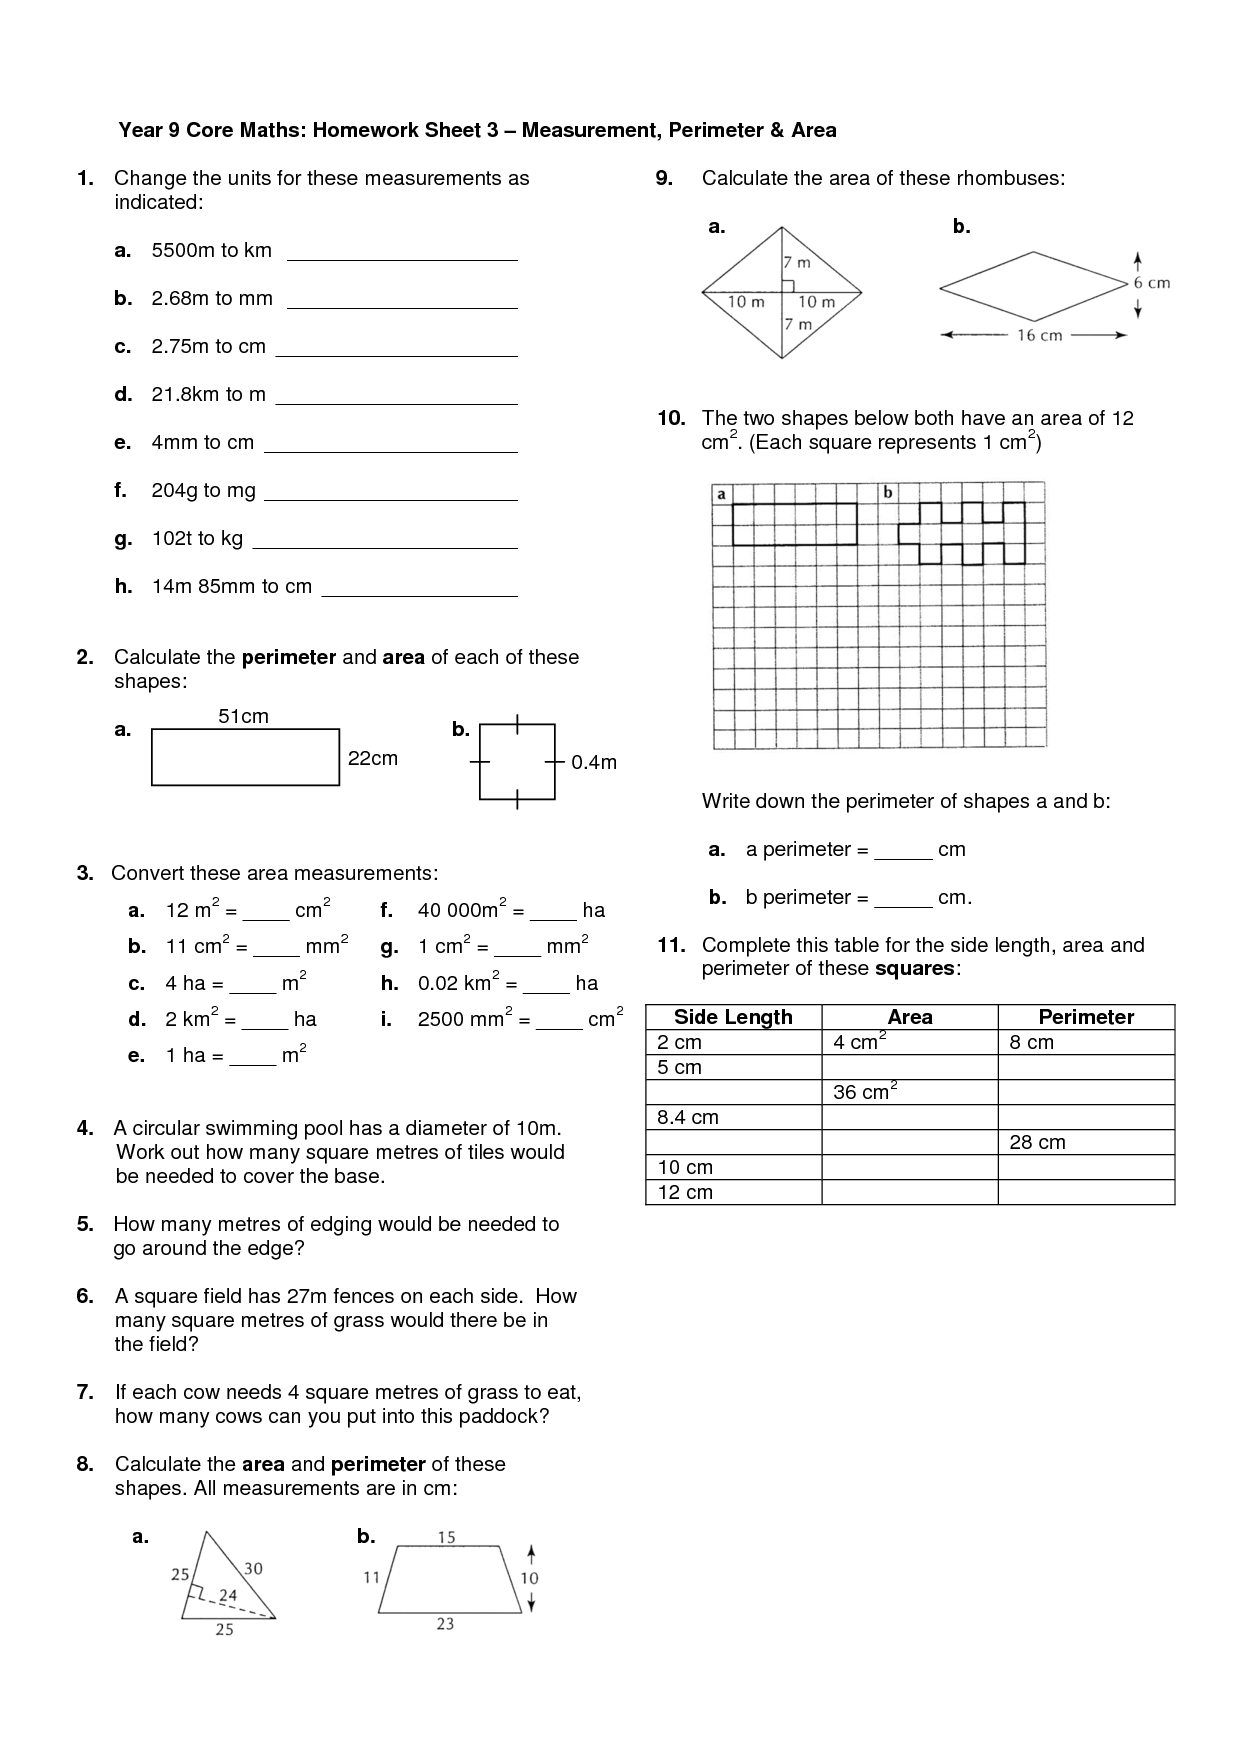 Year 6 homework sheets